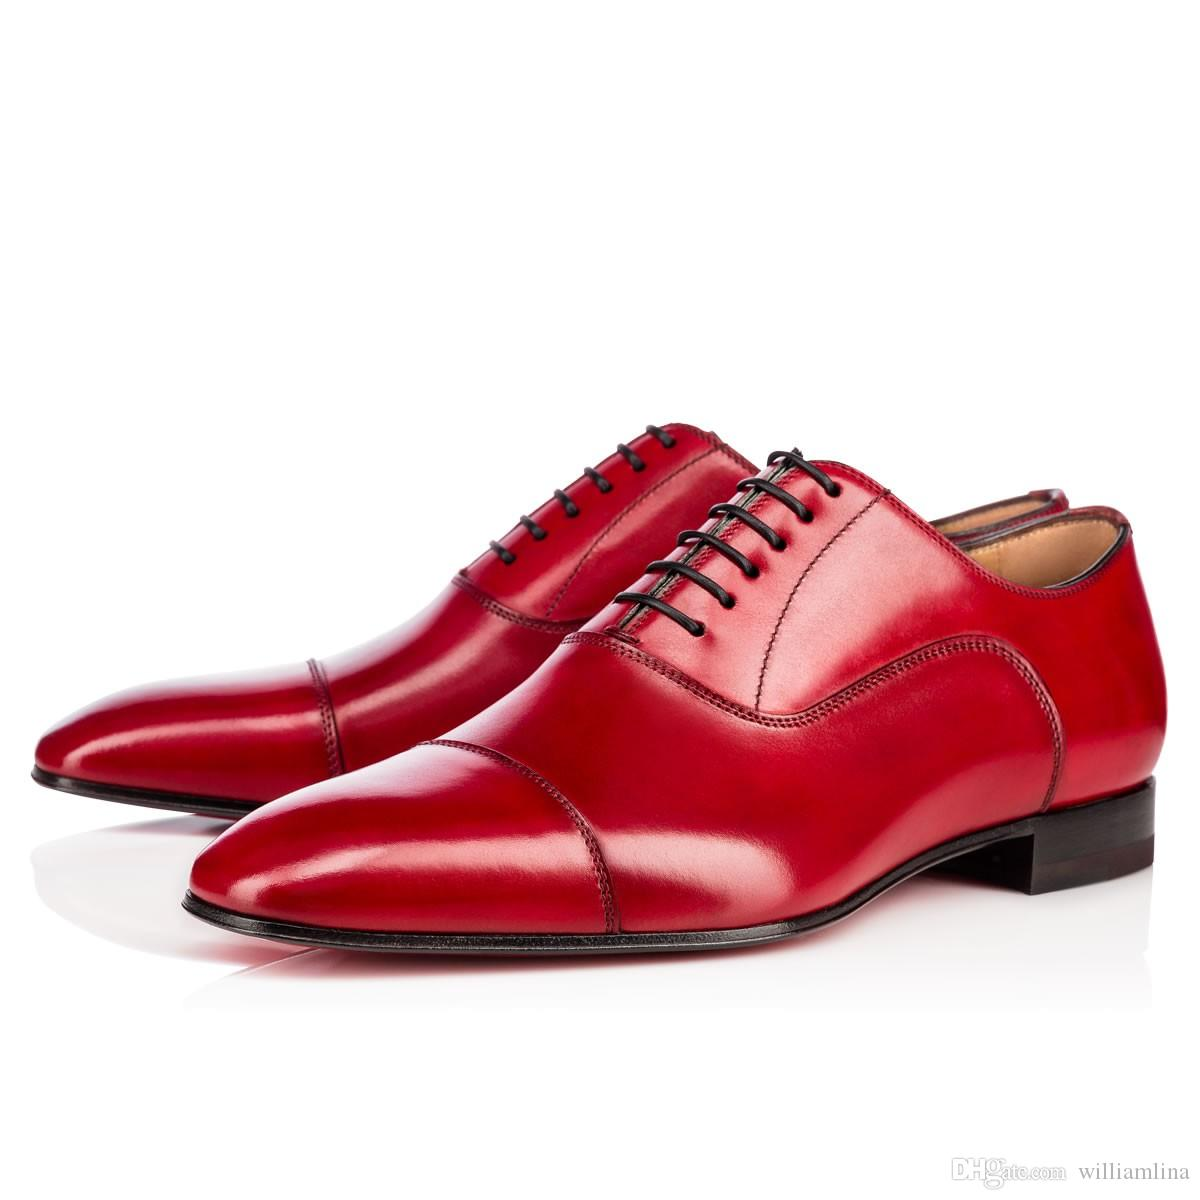 High Quality Red Bottom Greggo Orlato Loafers Flats Lace Up Spikes Men's Sneakers Flats Luxury Women Leisure Party/business/Dress Size 35-46